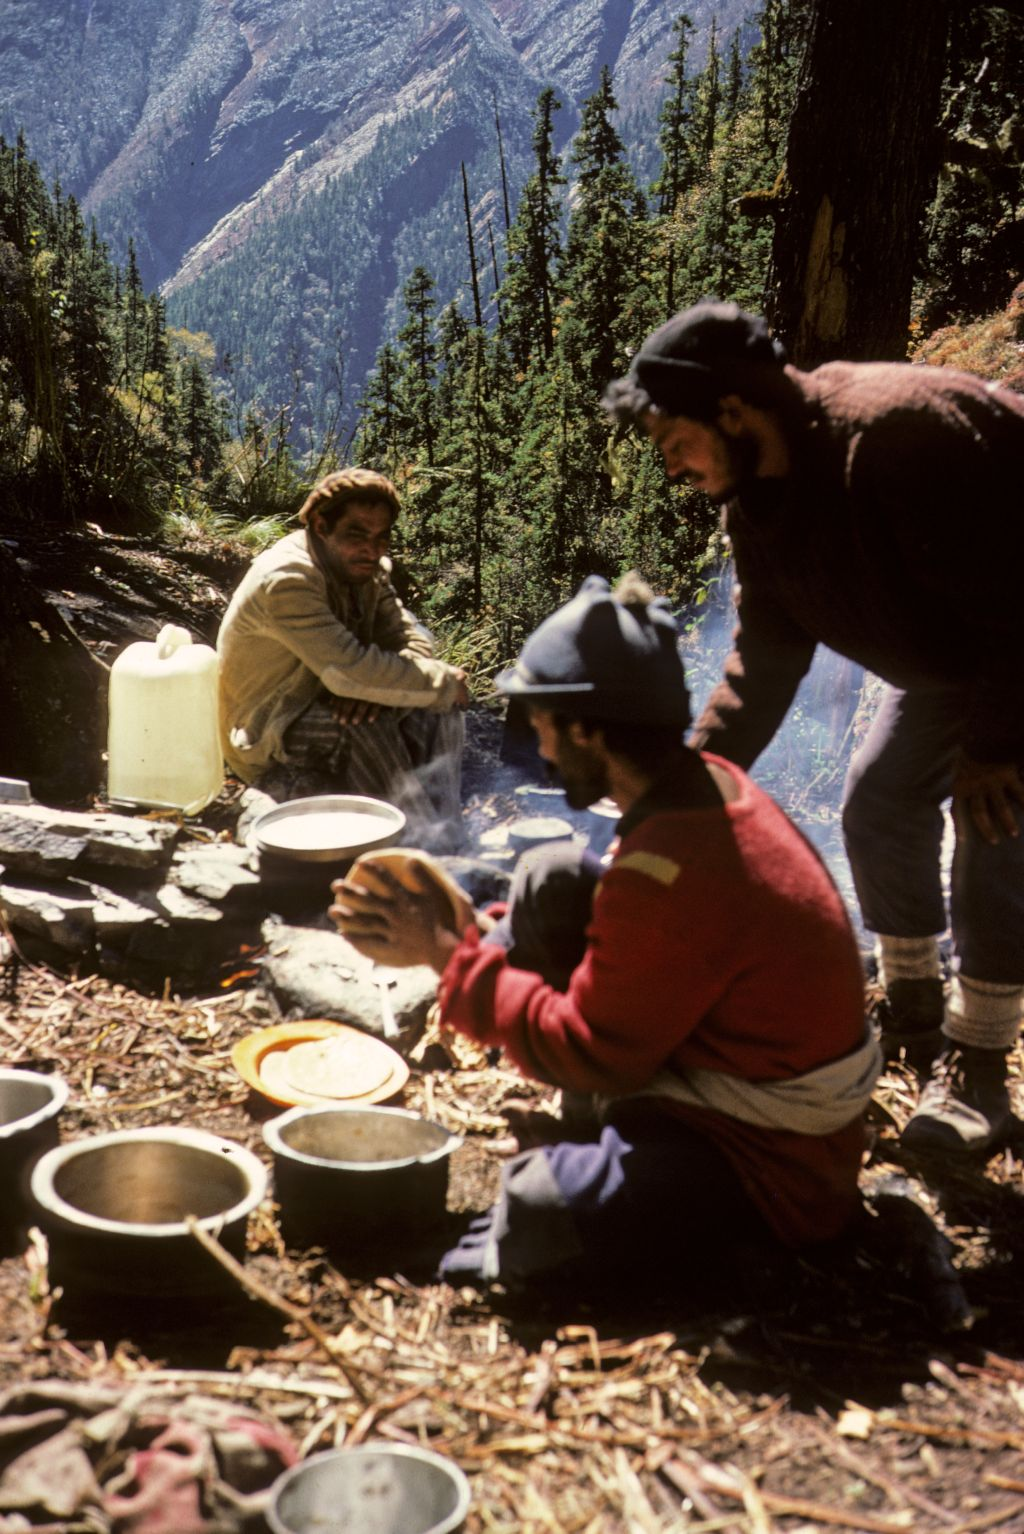 Ri Singh, Sher Singh and porter making chapattis on for supper, Dibrugetta [India]